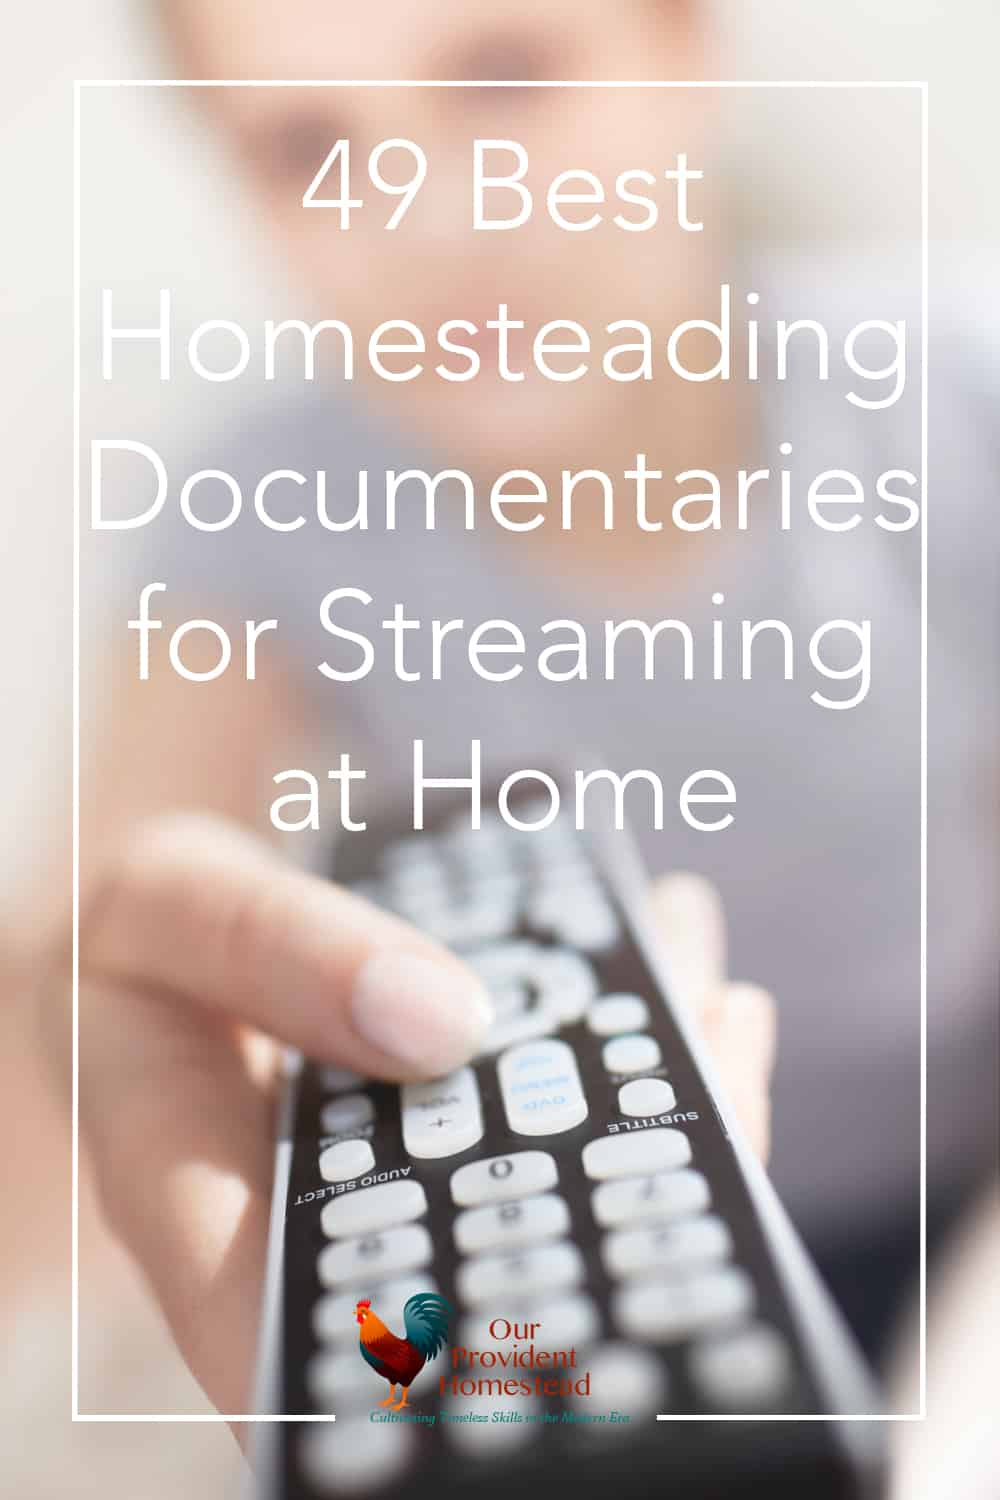 Do you have downtime in the winter? Click here to see the 49 best homesteading documentaries for streaming at home to keep you learning all winter long. Winter Blues | Homesteading Documentaries | Streaming Movies